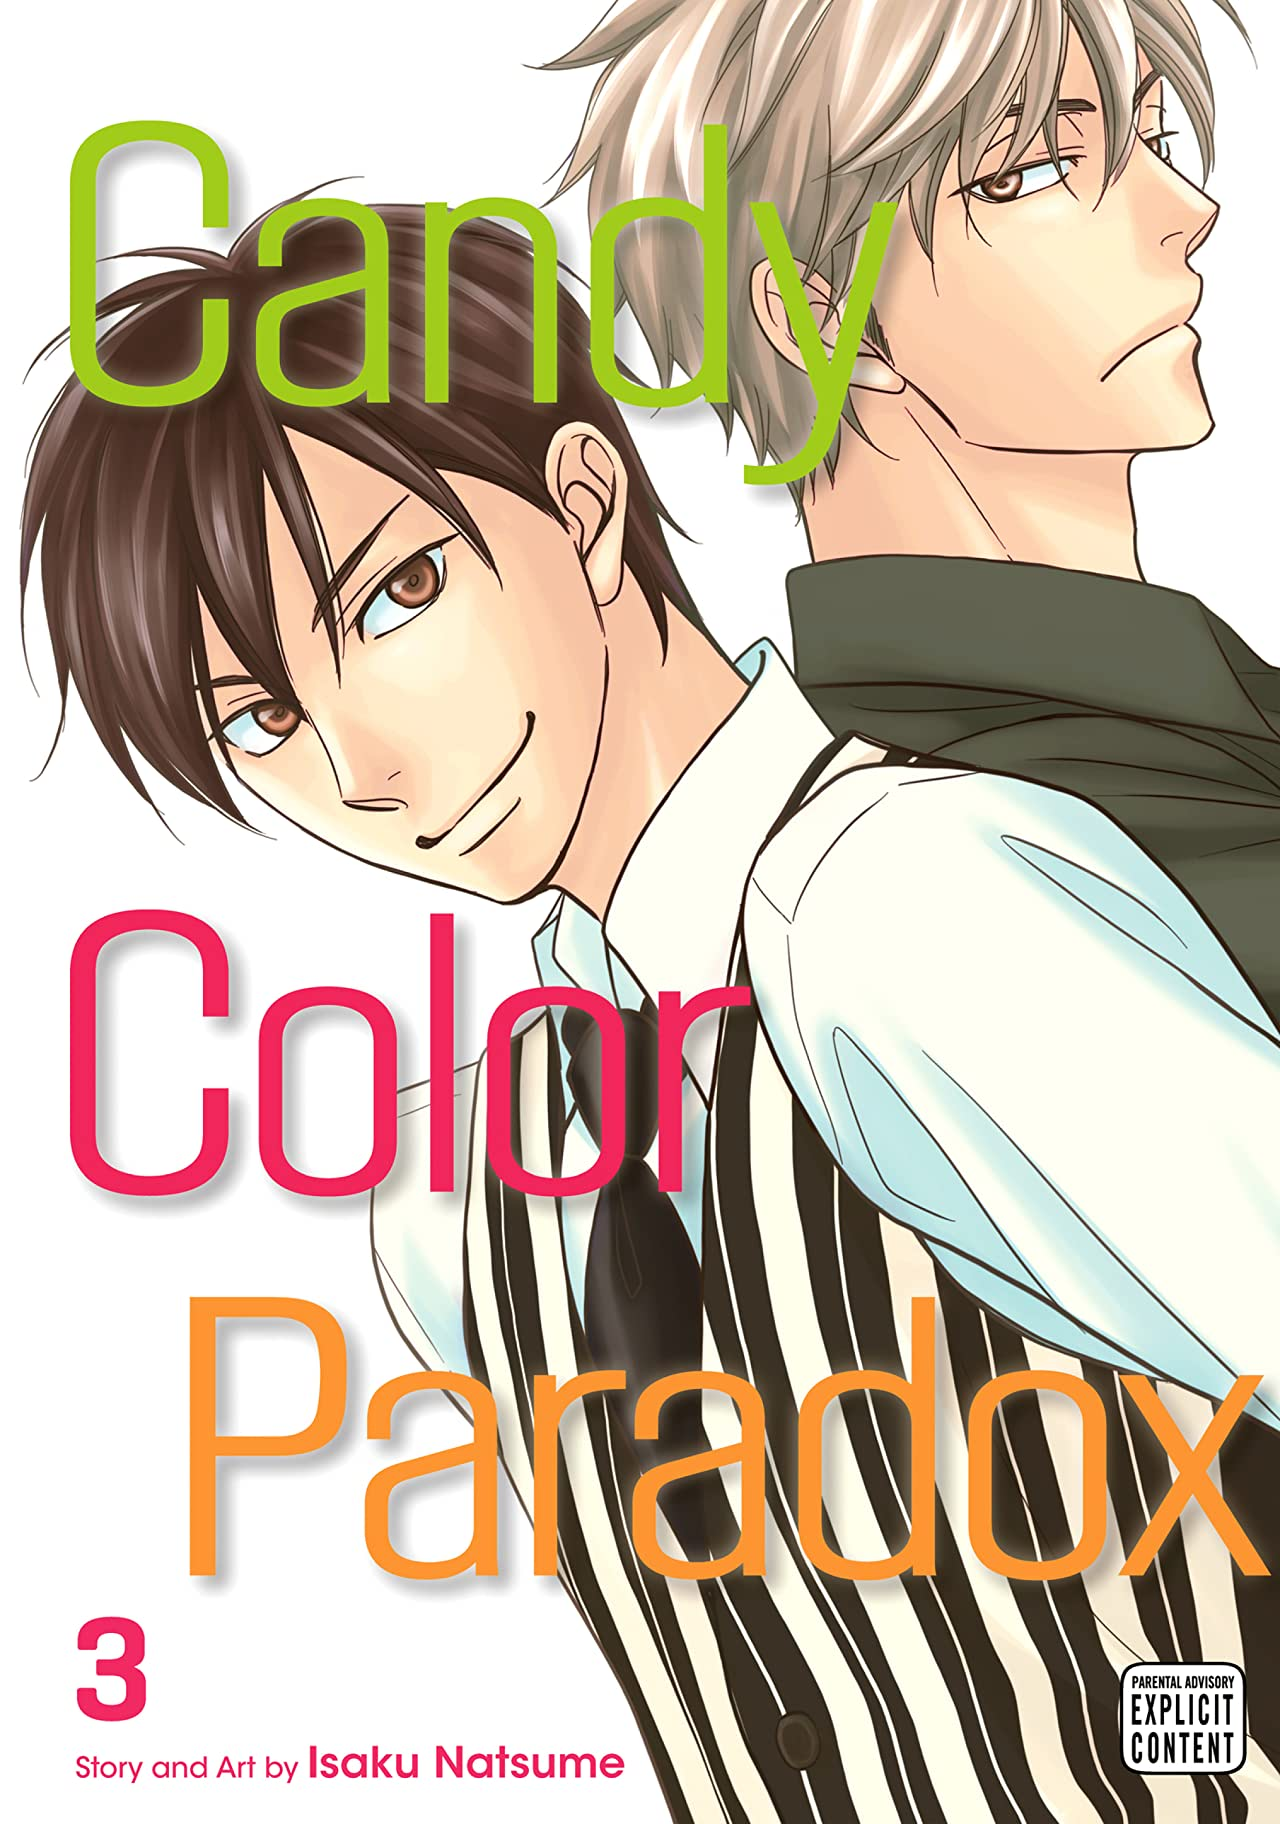 Candy Color Paradox Vol. 3